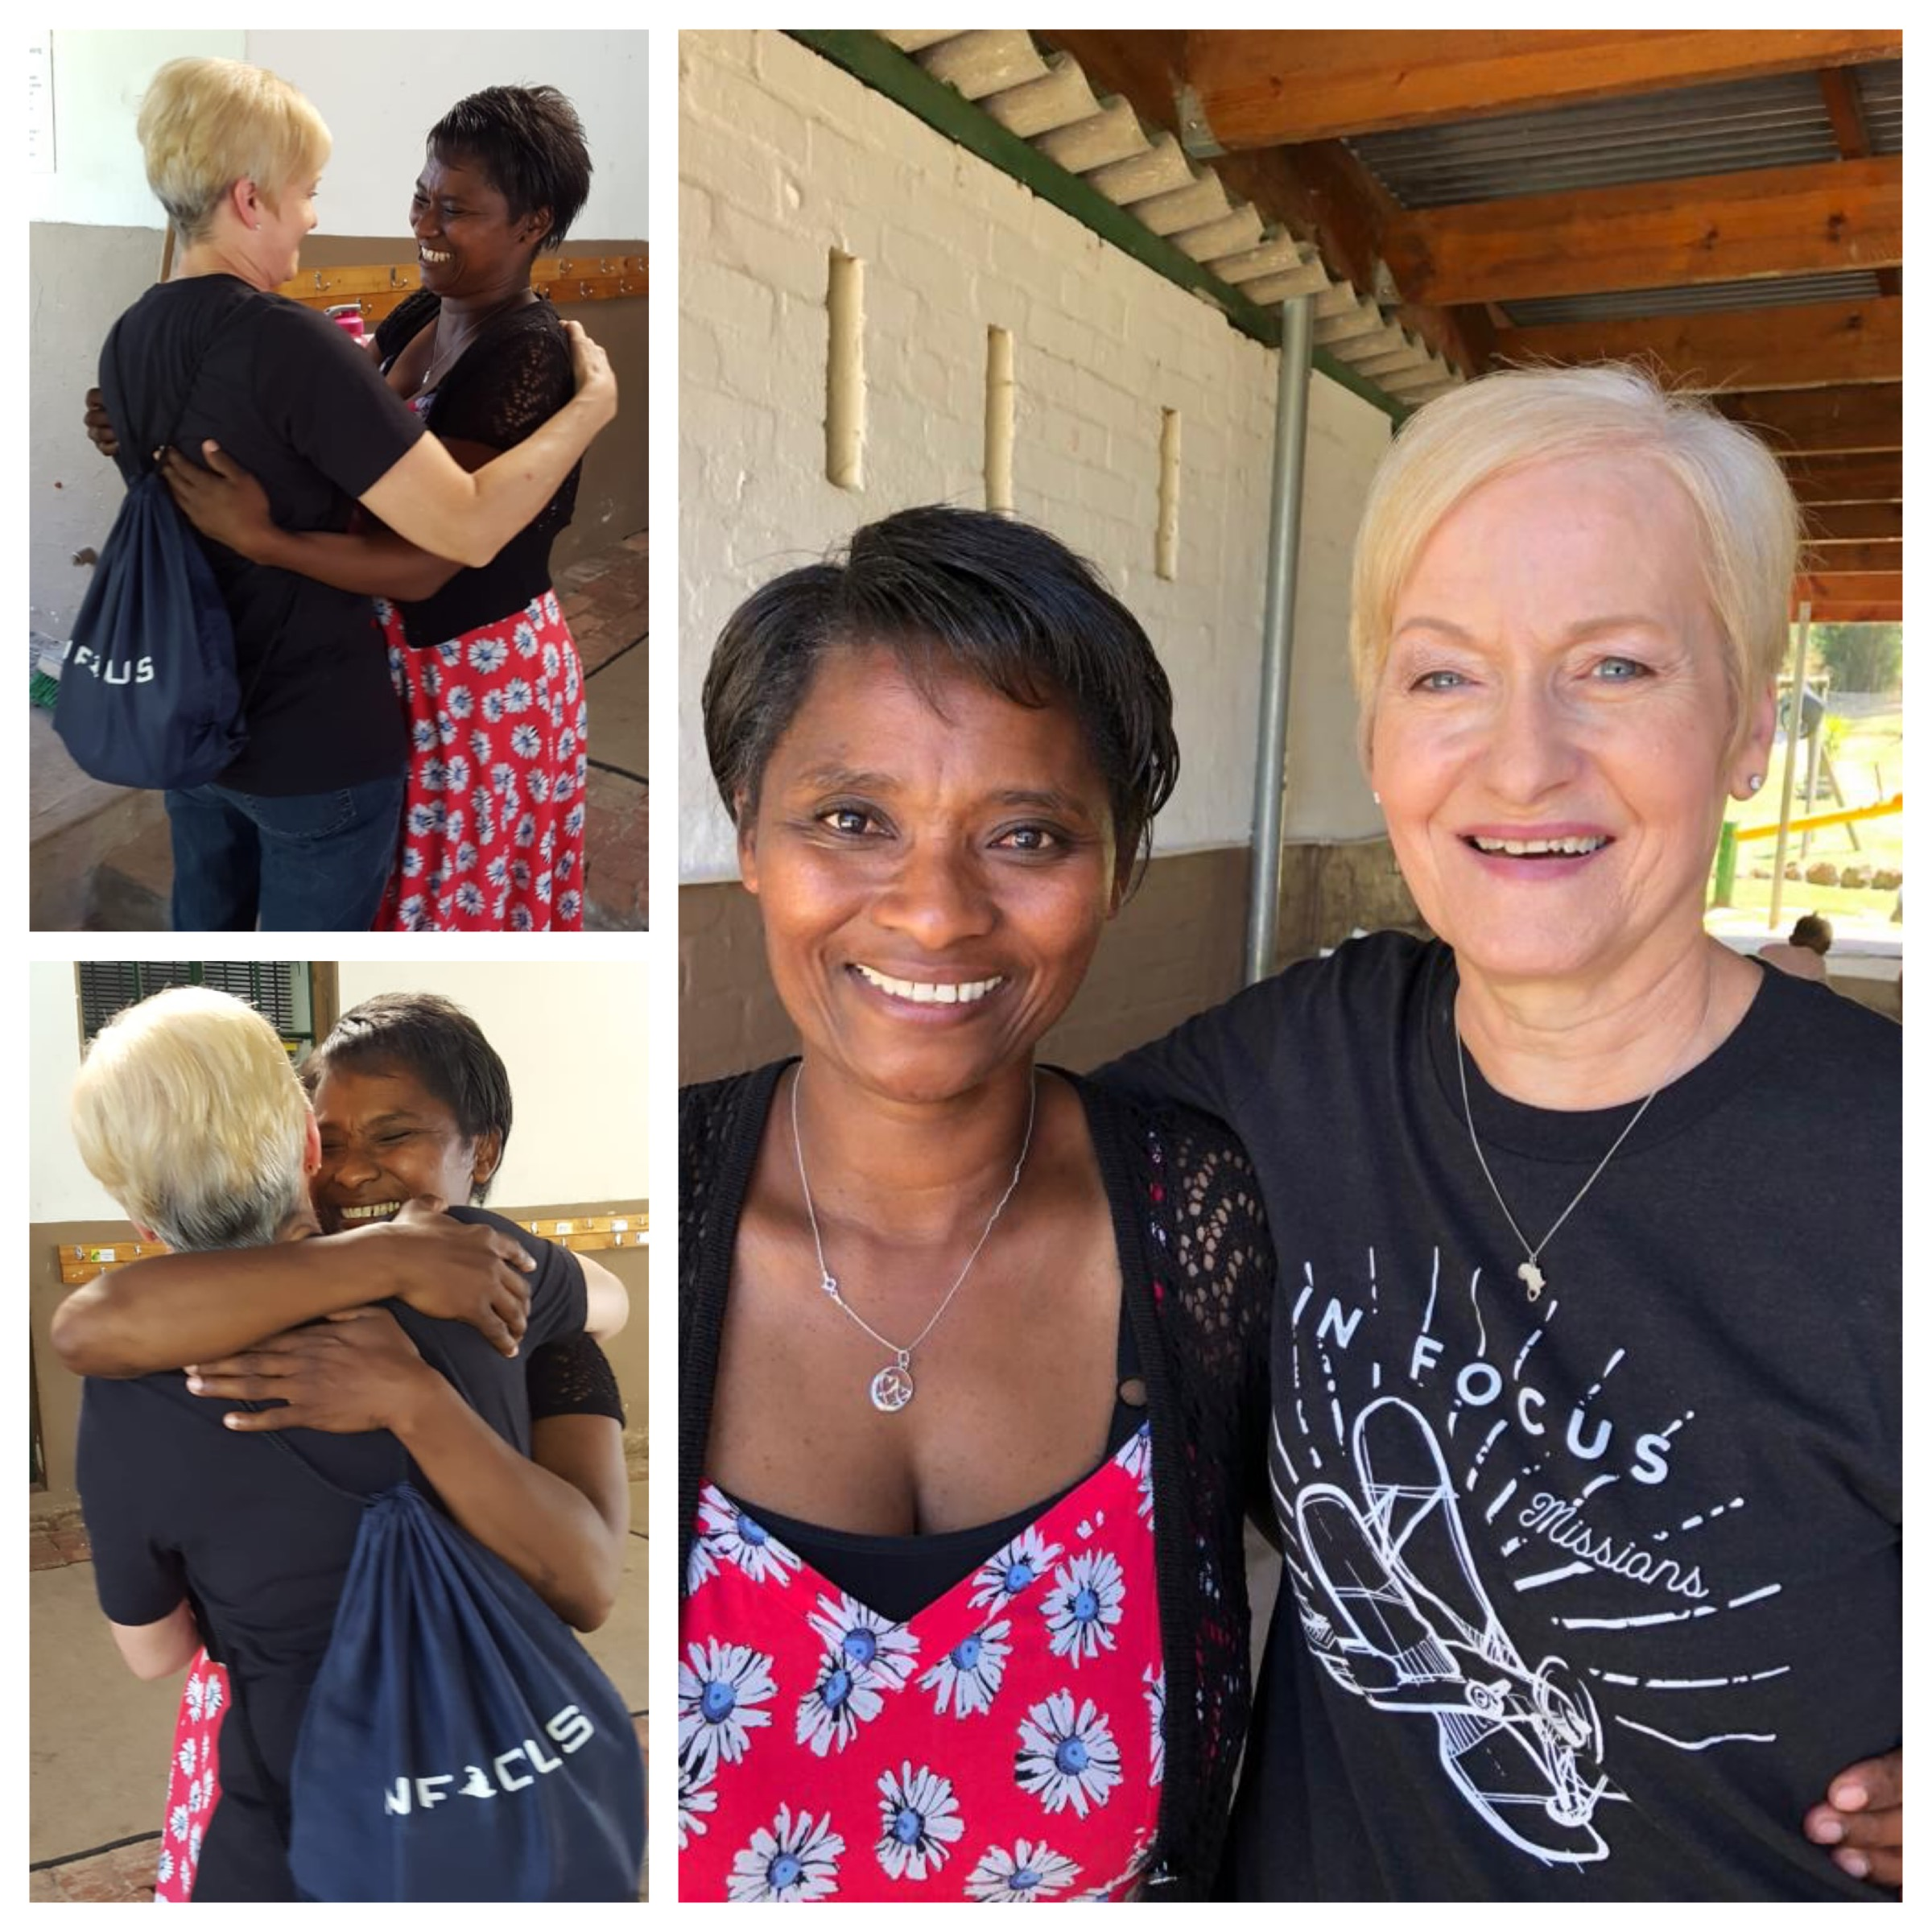 The reunion between Patti and Elizabeth was 6 people's JOY and JESUS for the day! They have been friends since the very first IFC trip to SA in 2007. God knits hearts! He has friendship for us!